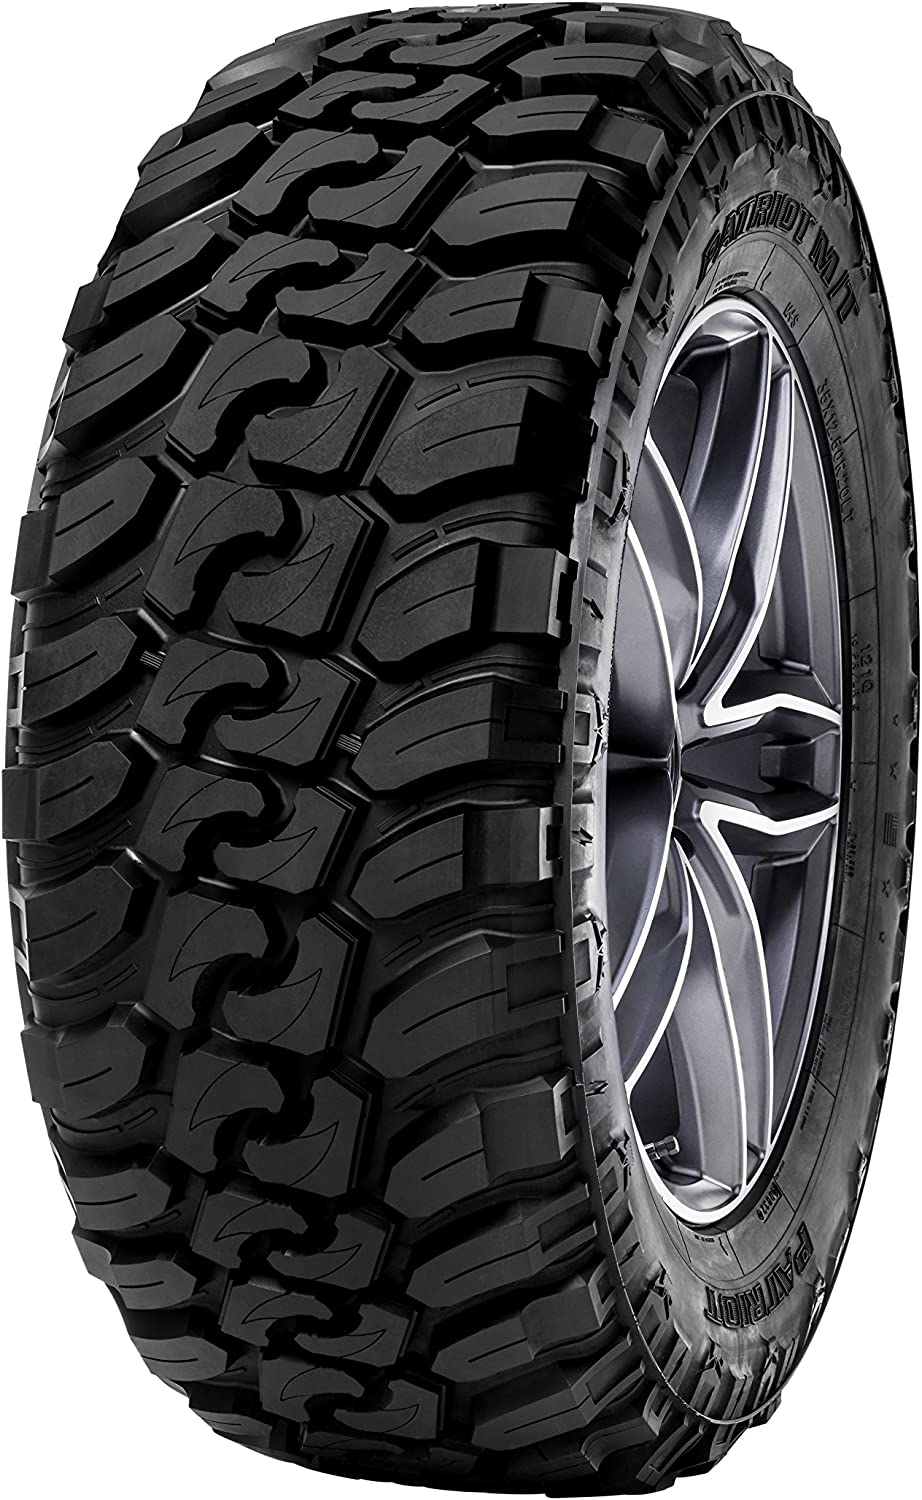 Patriot Tires MT All-Terrain Radial Tire